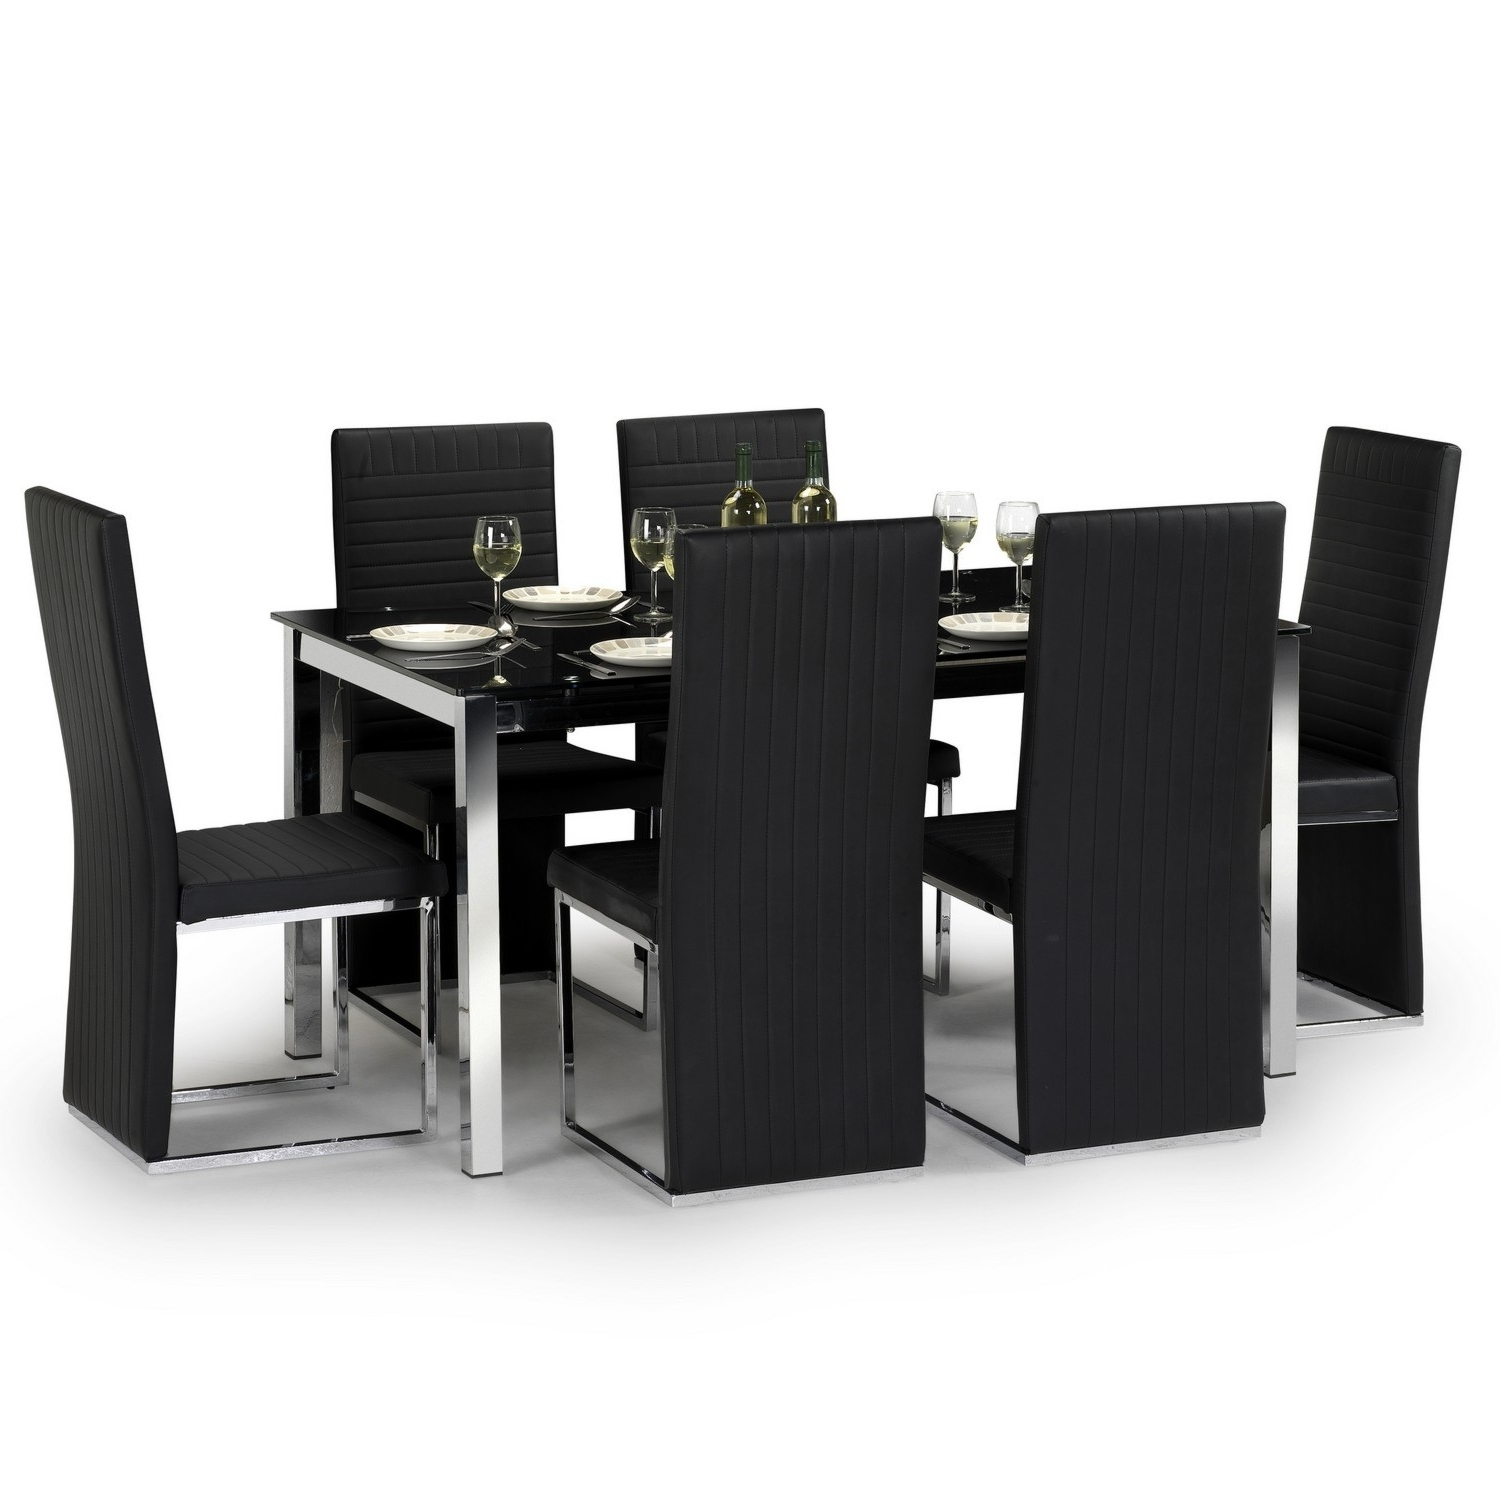 Tempo Dining Table And 6 Chairs With Fashionable Dining Tables And Six Chairs (View 22 of 25)